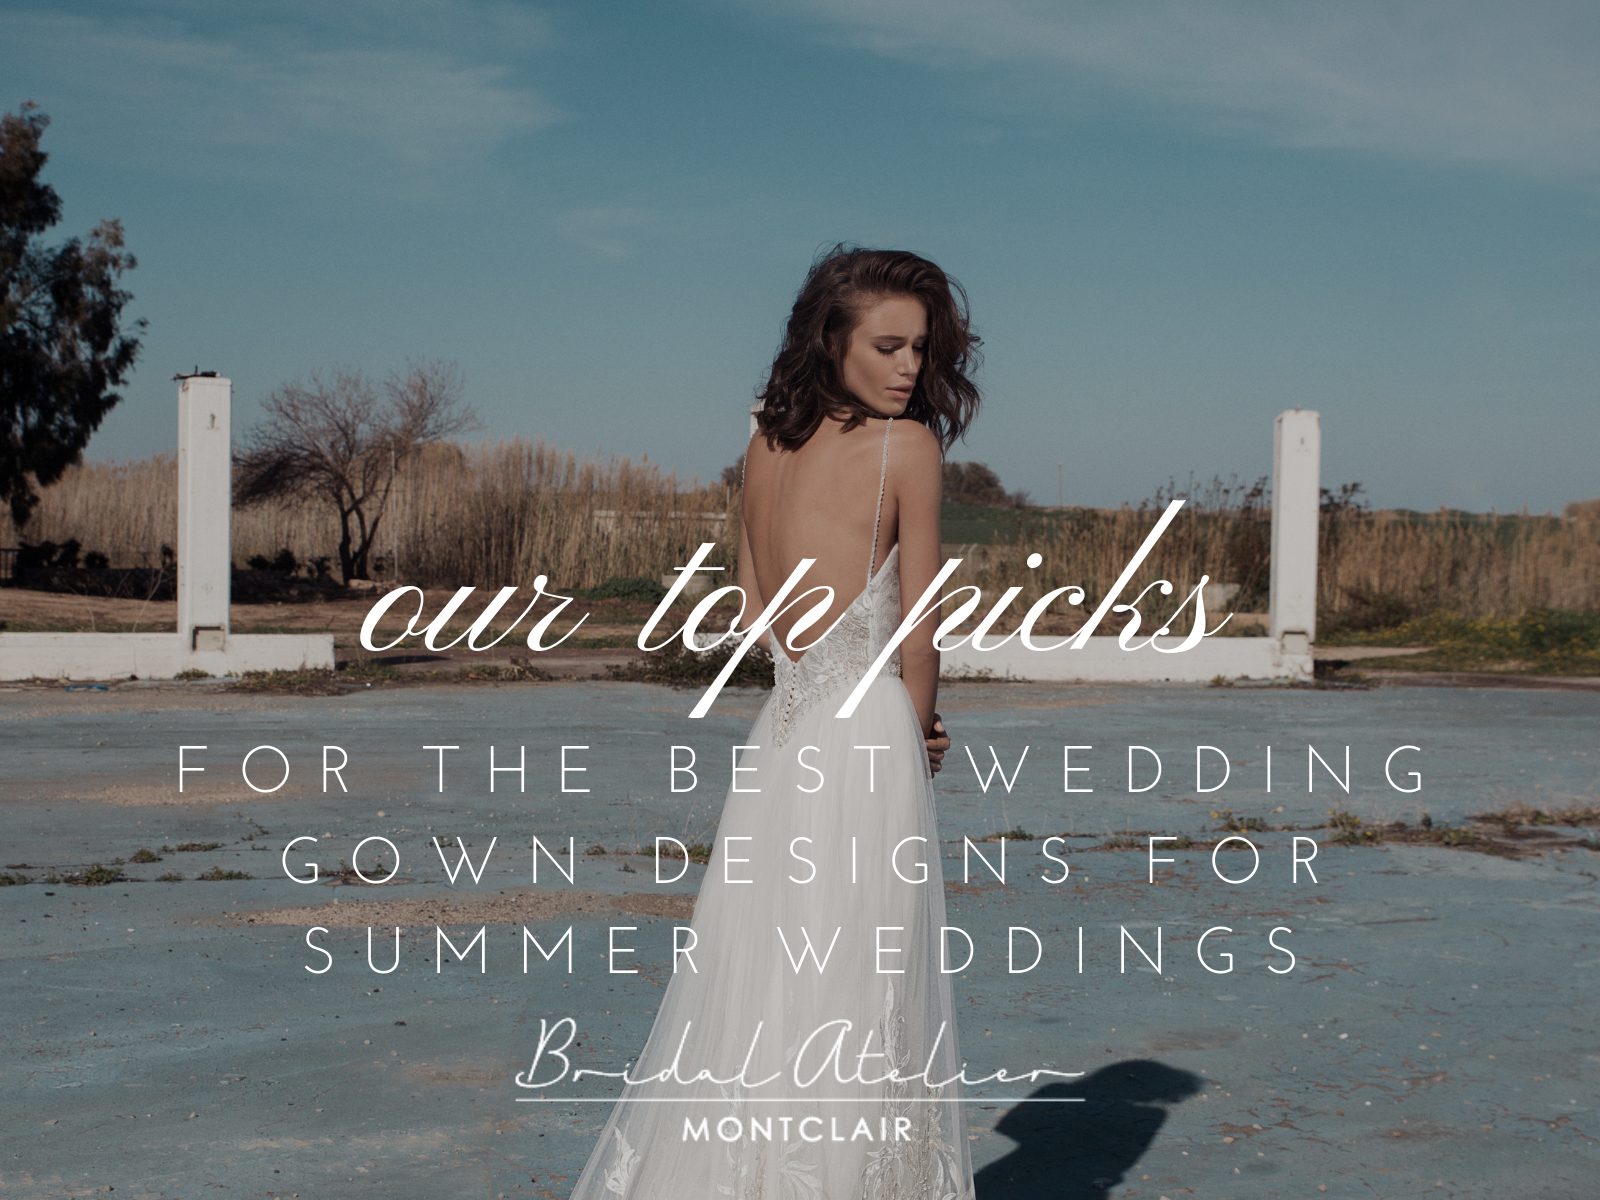 Our Top Picks for the Best Wedding Gown Designs for Summer Weddings. Desktop Image